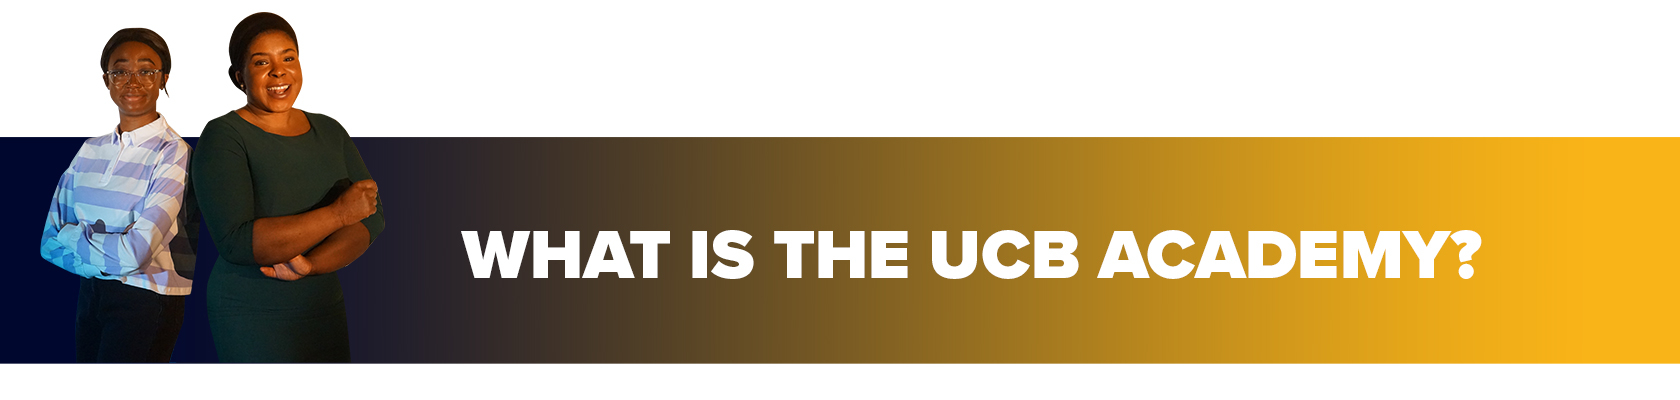 What is the UCB Academy?